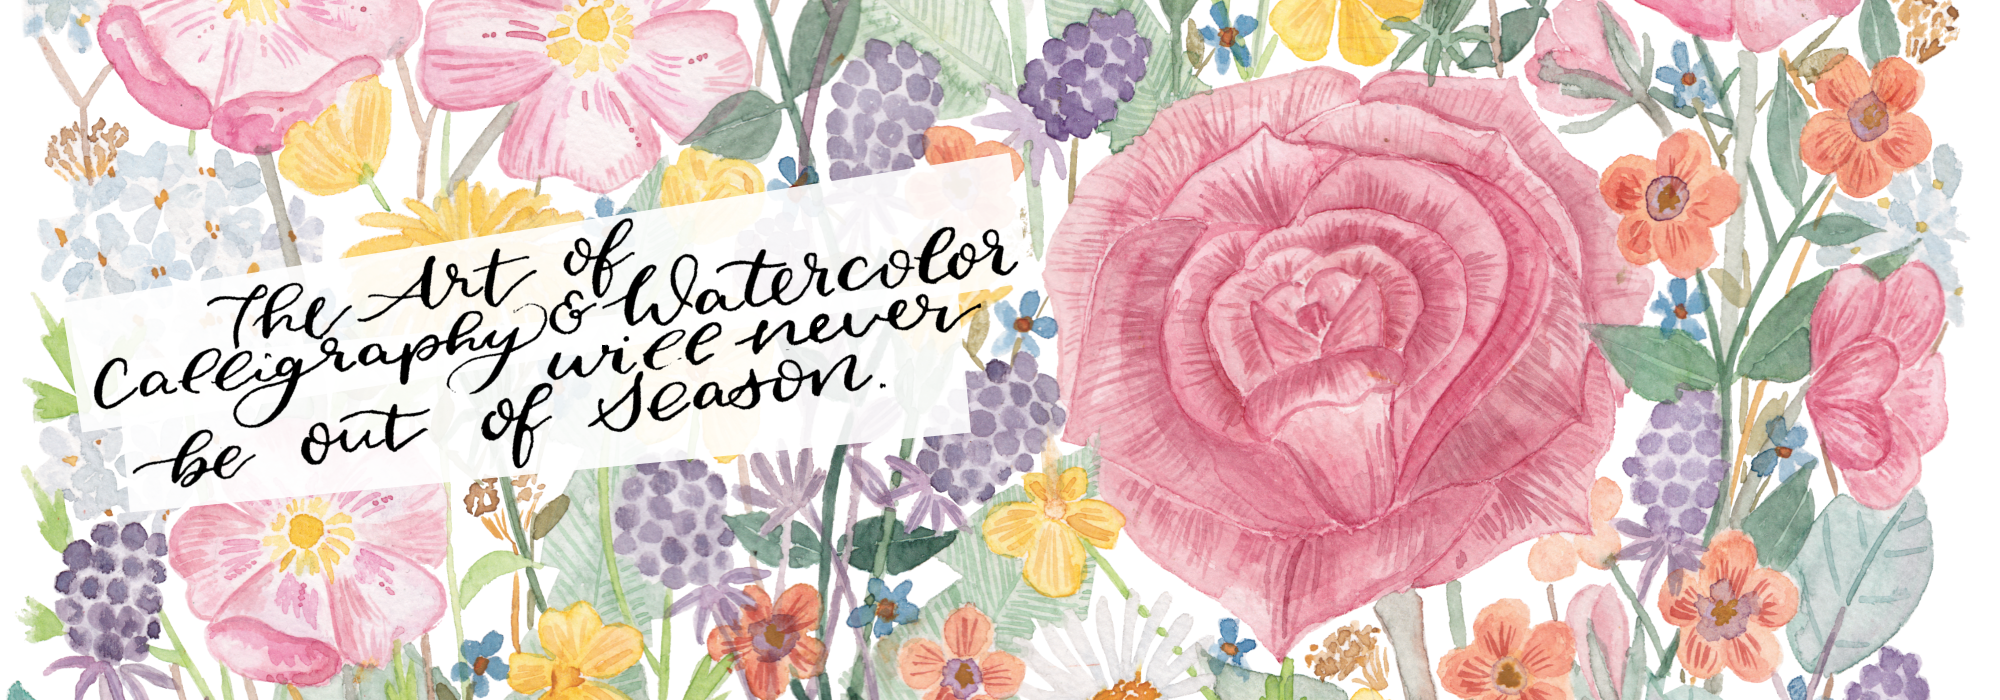 header final inkanotes Calligraphy Watercolor Artist Food Illustrations Botanical and Flowers Ireland Germany